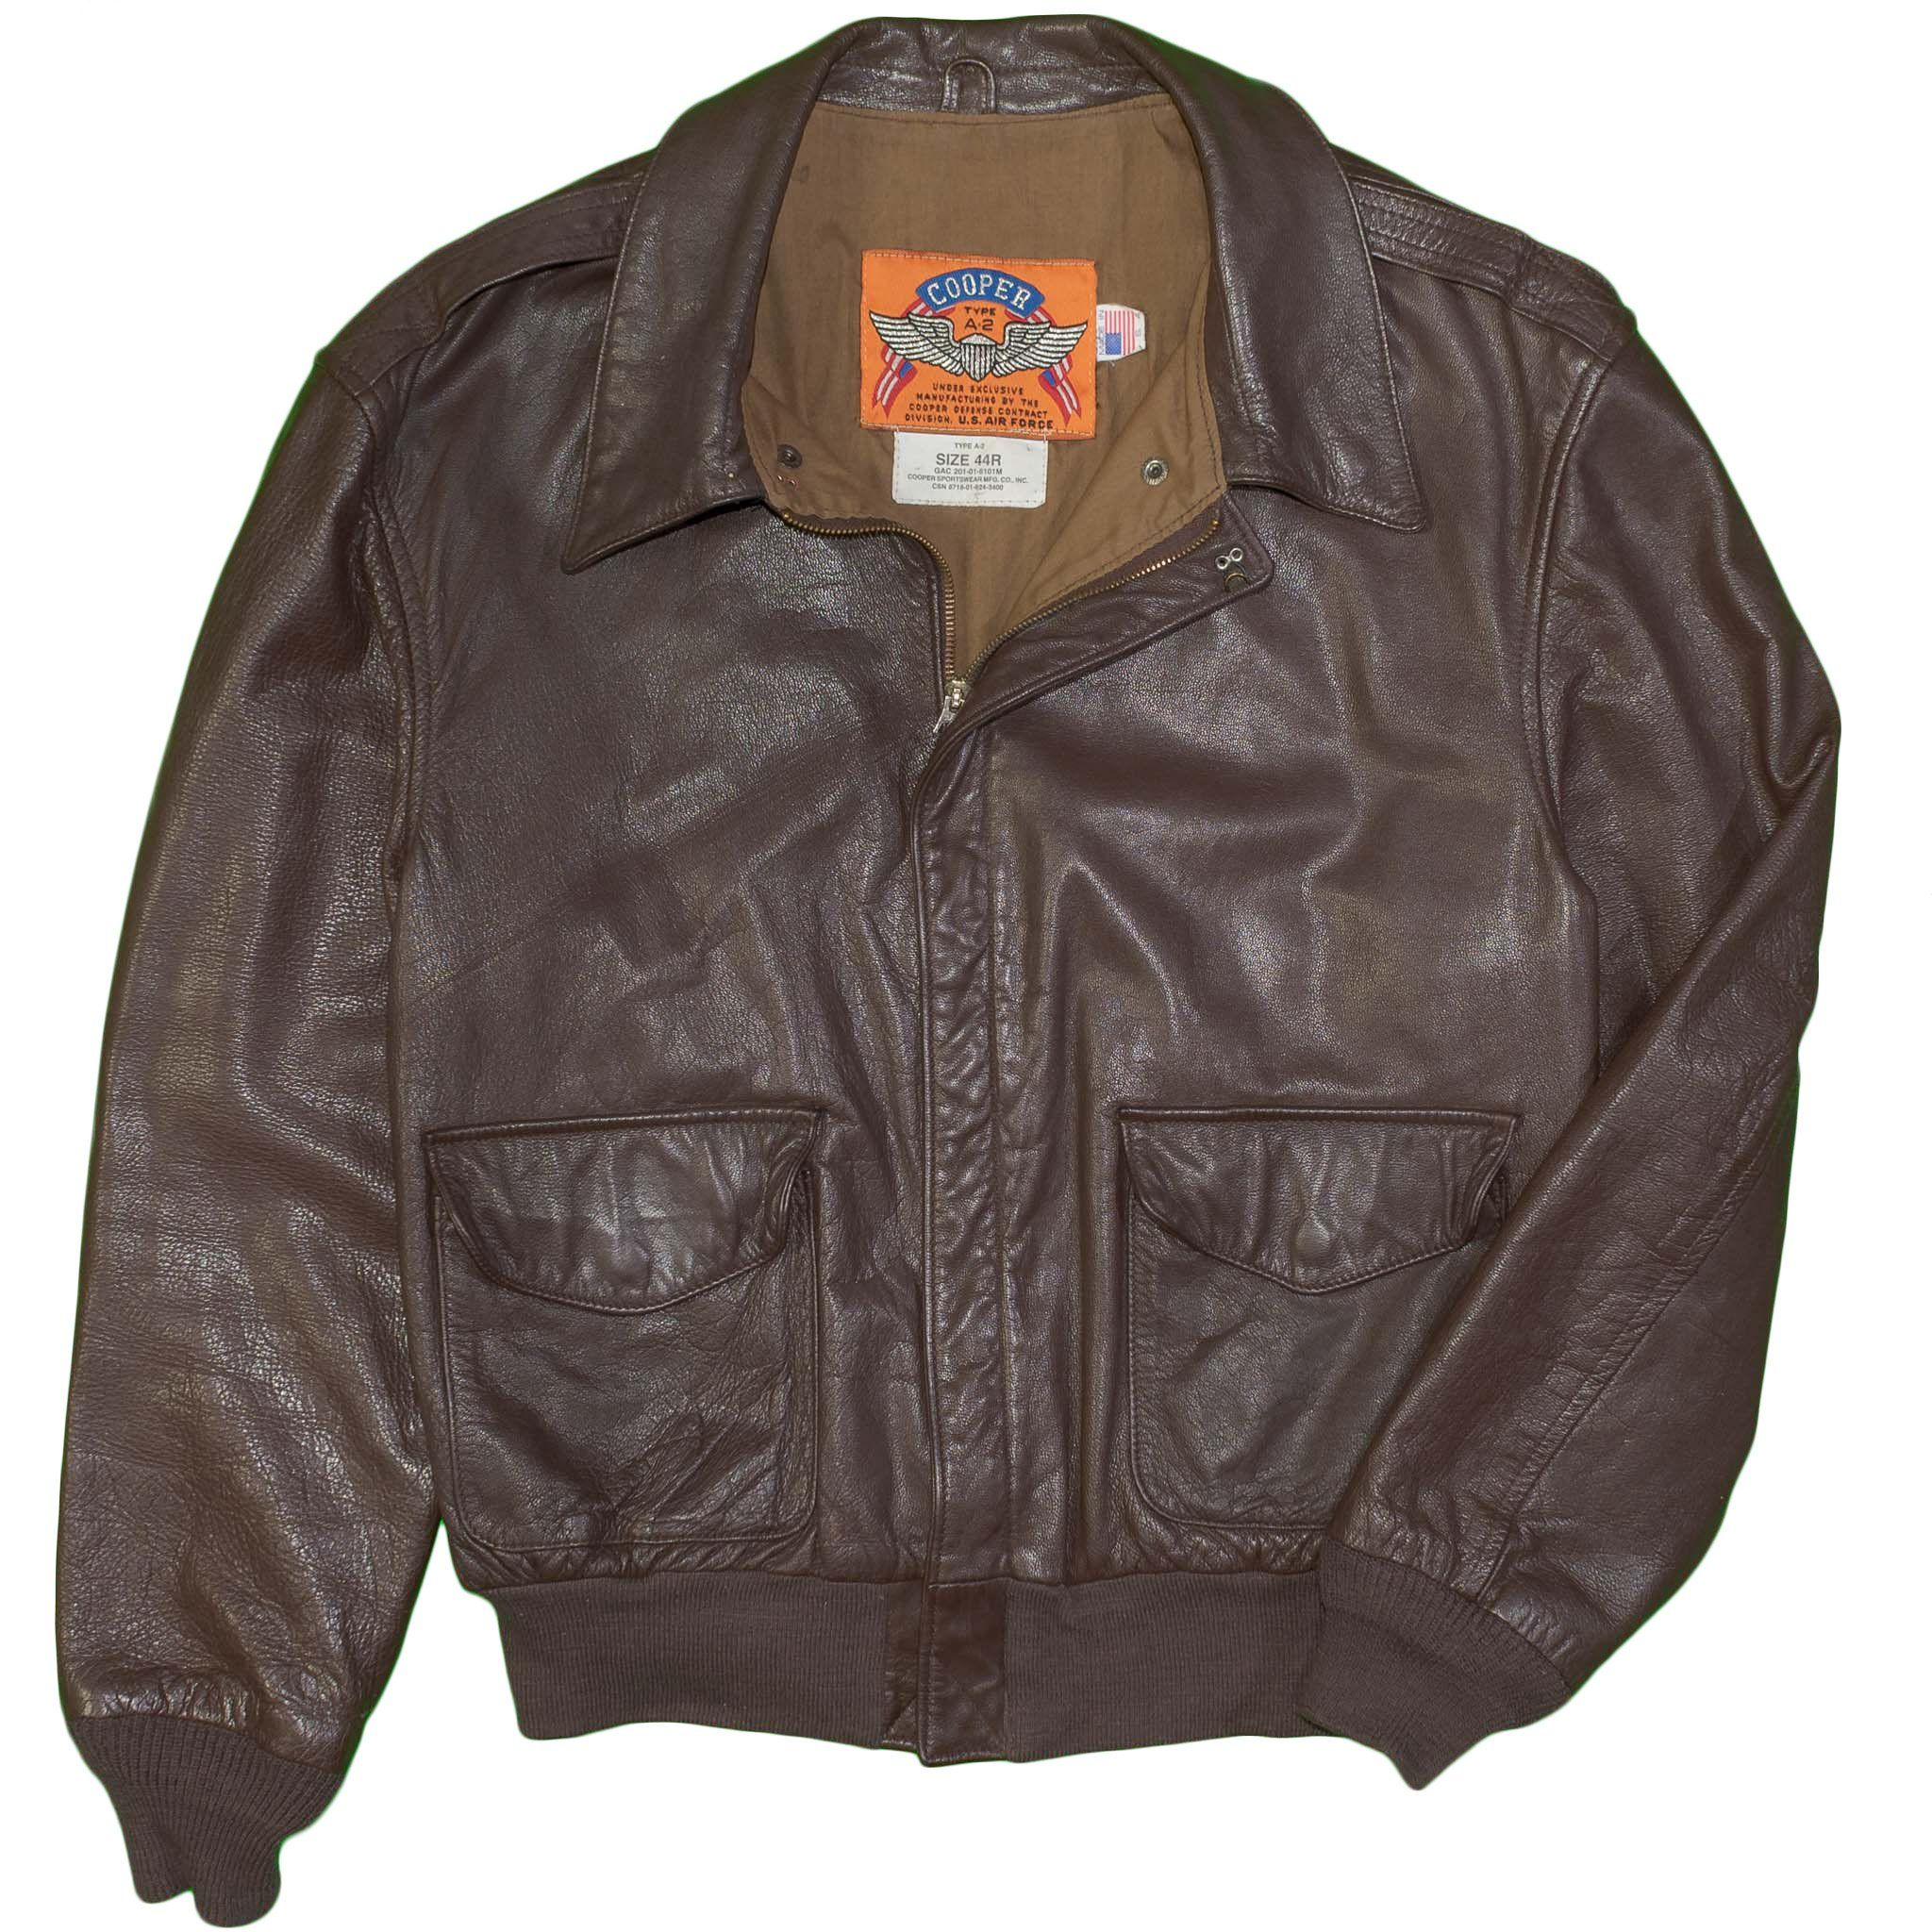 f4ea4c98da6 Cooper A-2 Bomber Flight Jacket Vintage 100% Goatskin Leather 44 Regular  United States Air Force Military Civilian Aviation Flying Pilot Airplane  Jet Plane ...